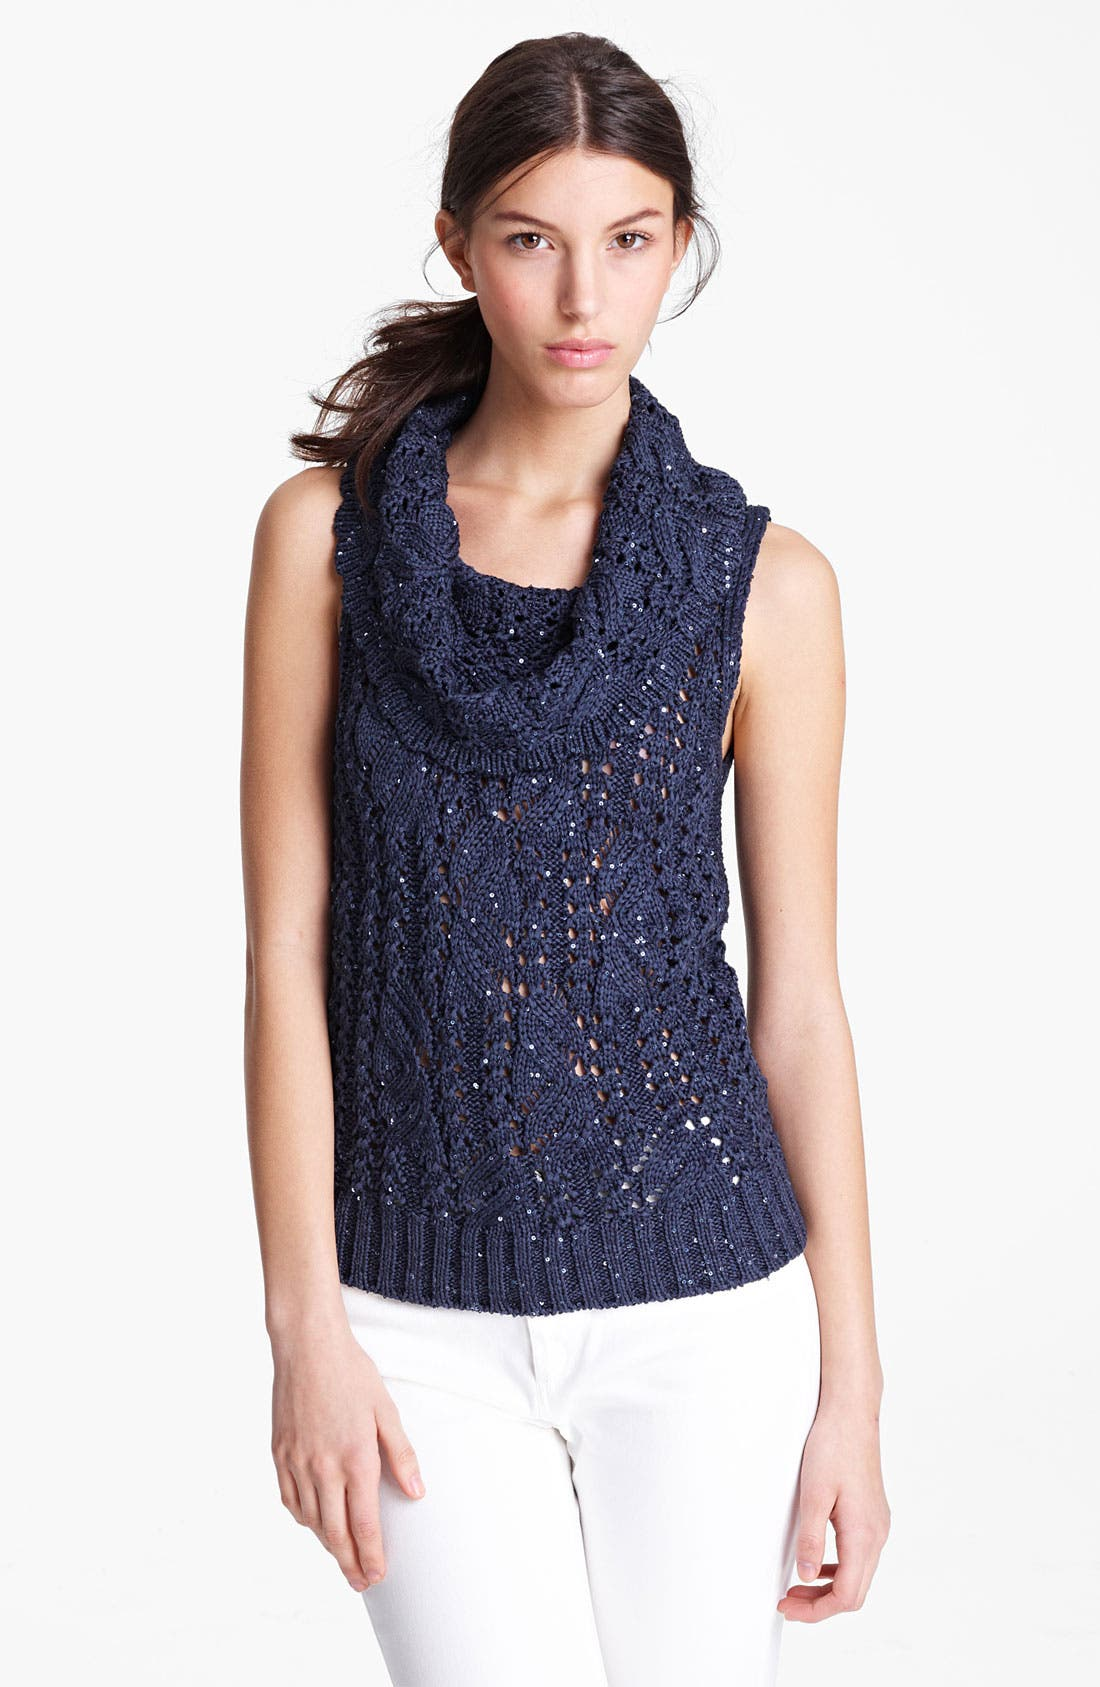 Main Image - Oscar de la Renta Sequin Knit Top